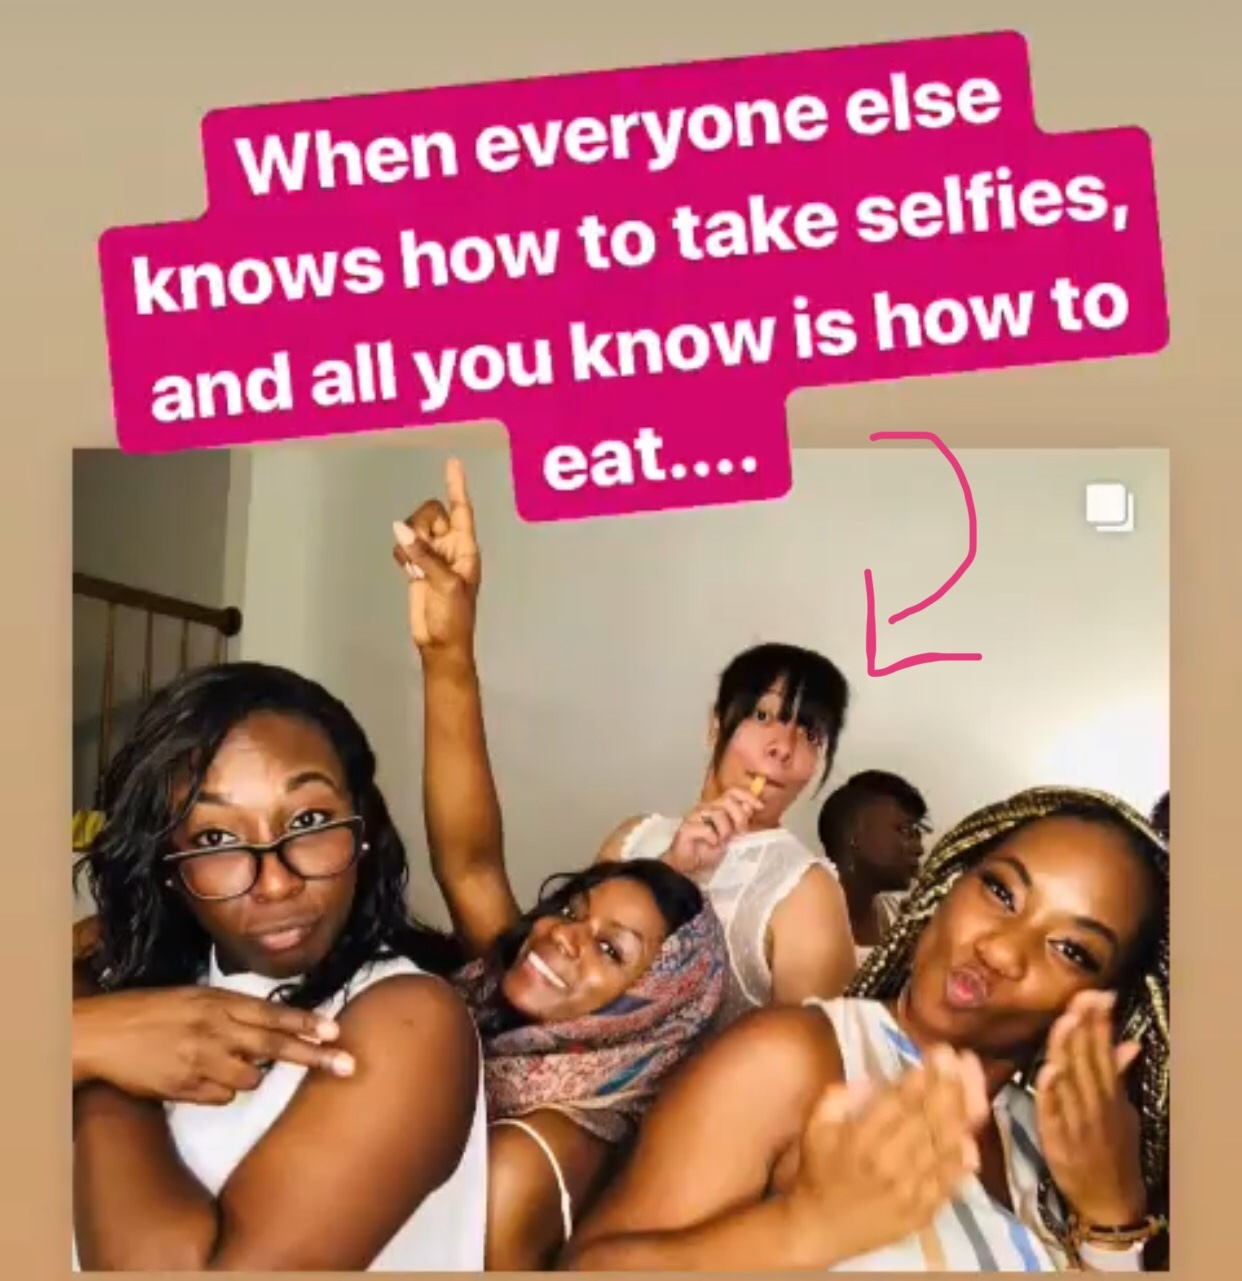 Yep, this totally not acceptable pic is from  my Instagram feed . That's me with a breadstick, while my friends are striking a cute pose. 😆